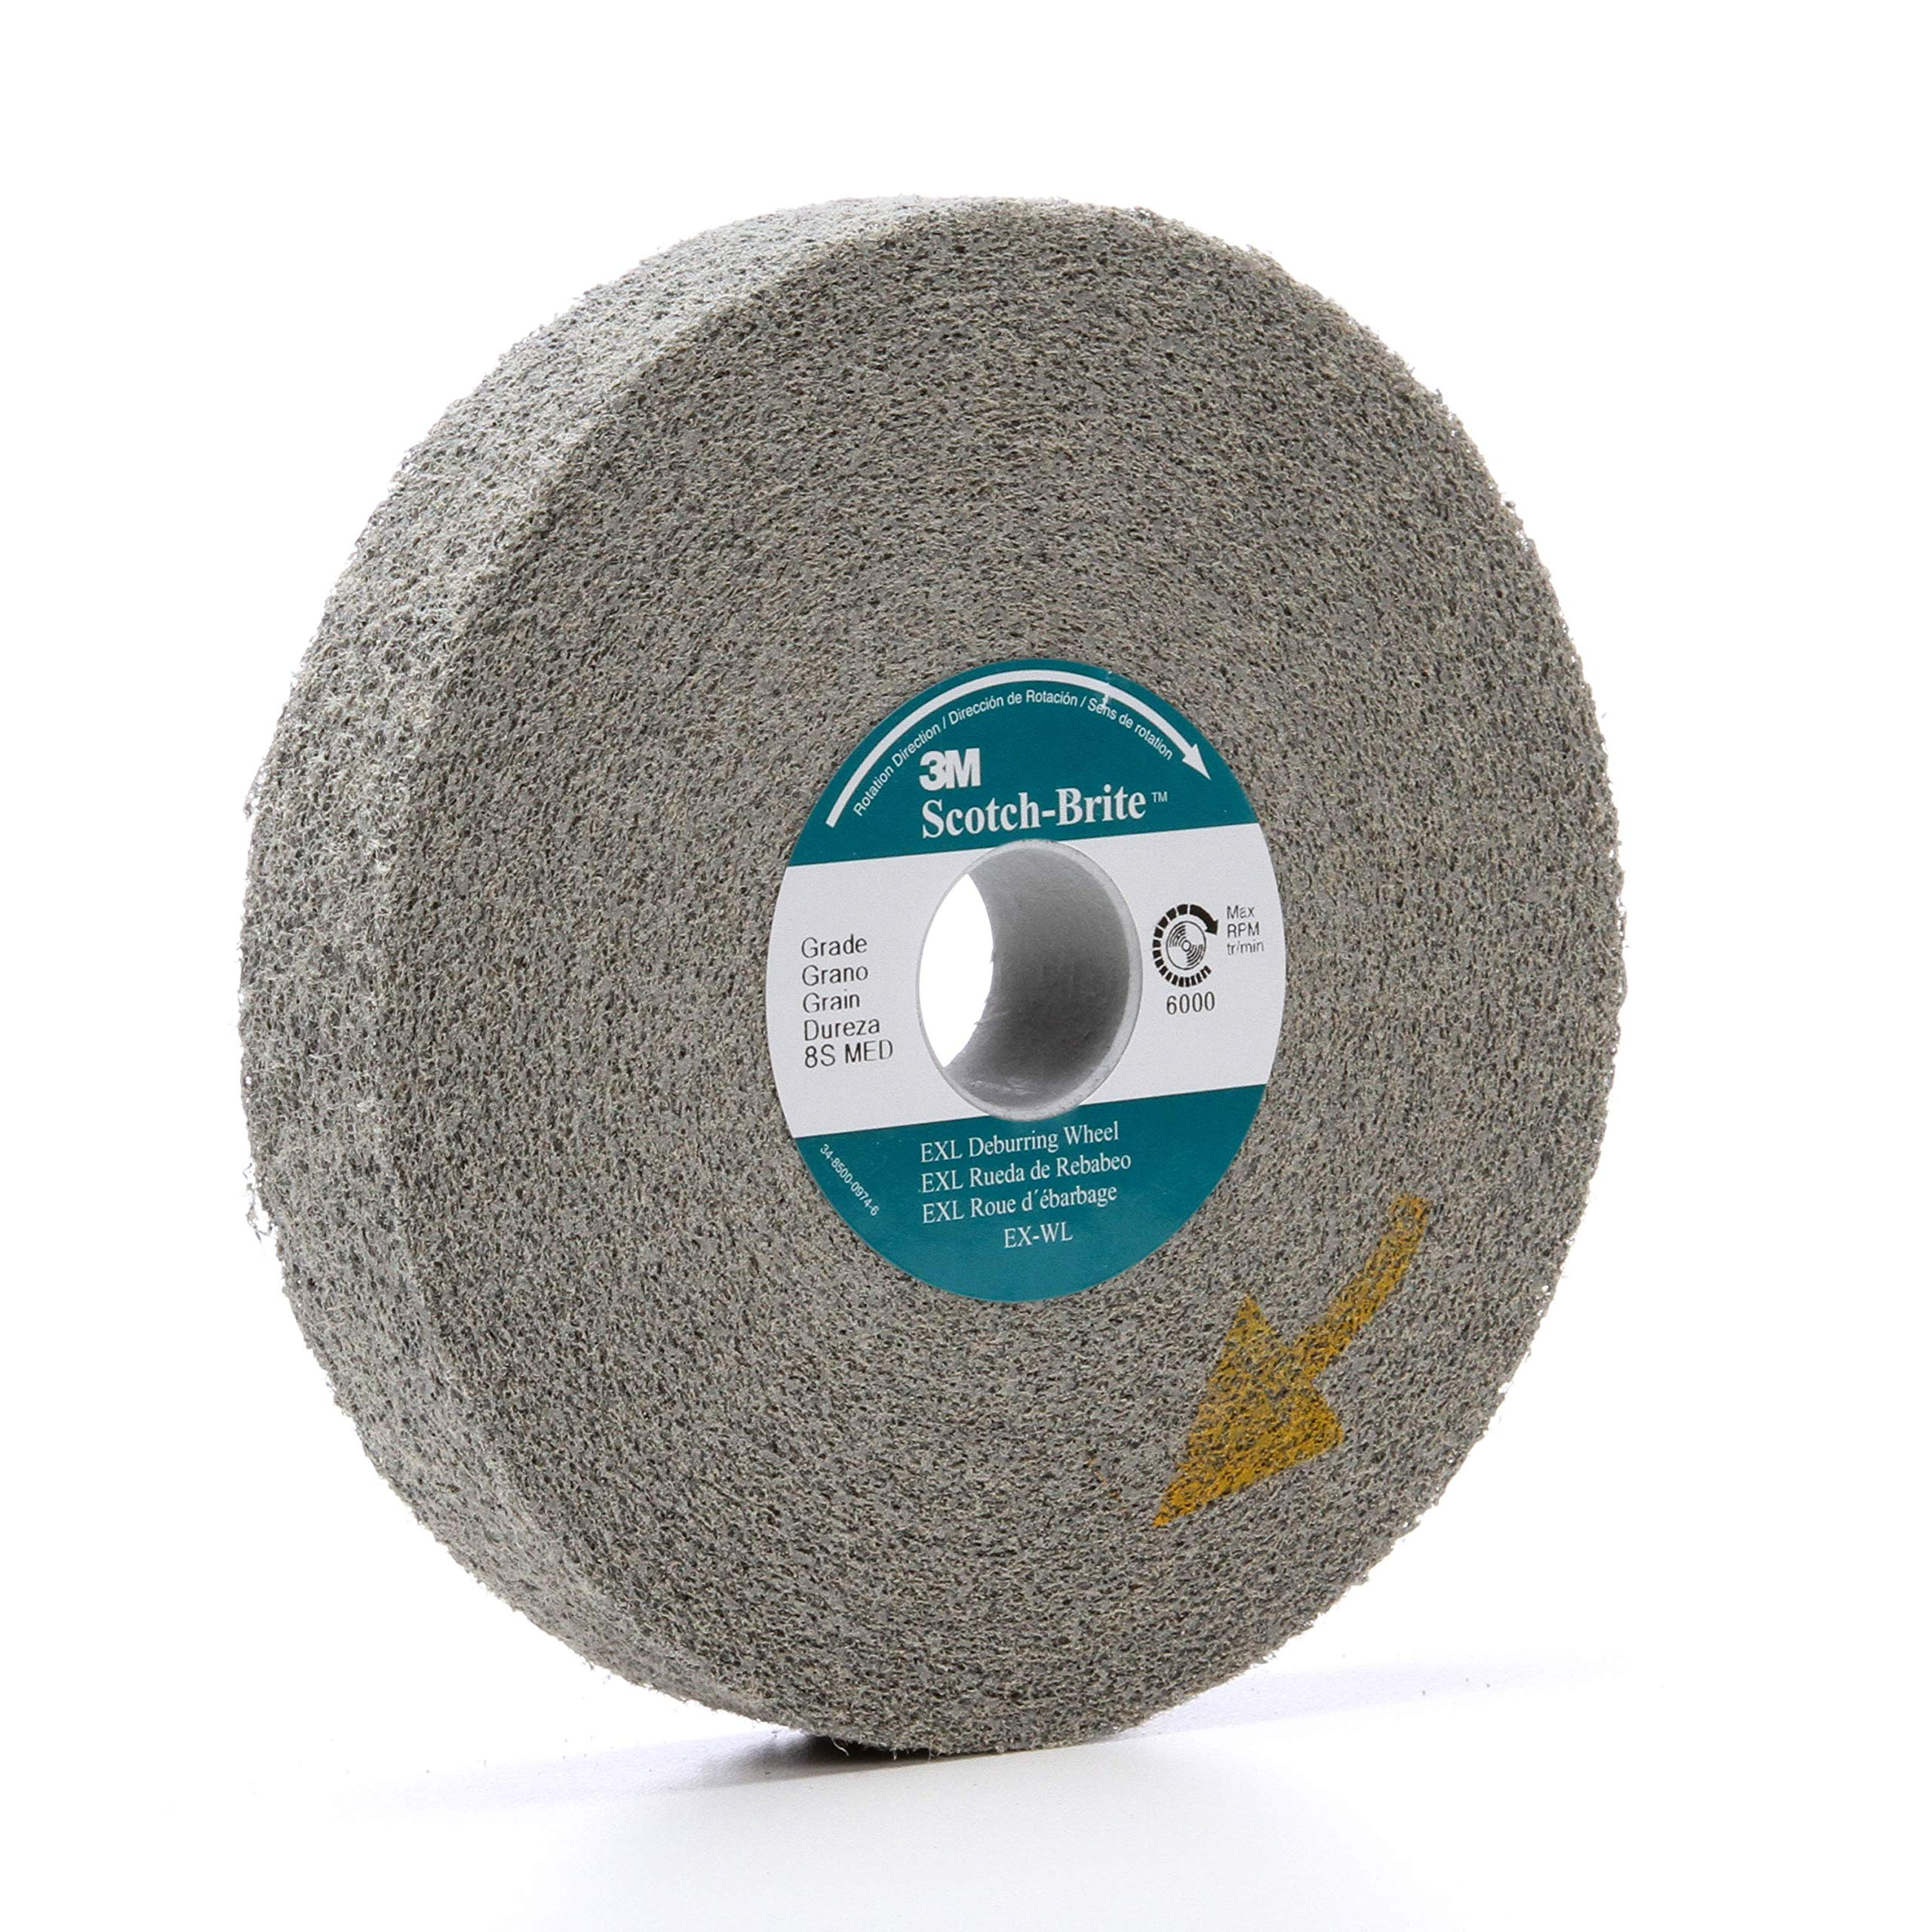 3/PK 3M Scotch-Brite 18278 EXL Deburring Wheel 6 in X 1 in X 1 in 8S MED // 7000028482 by APD-Incorporated